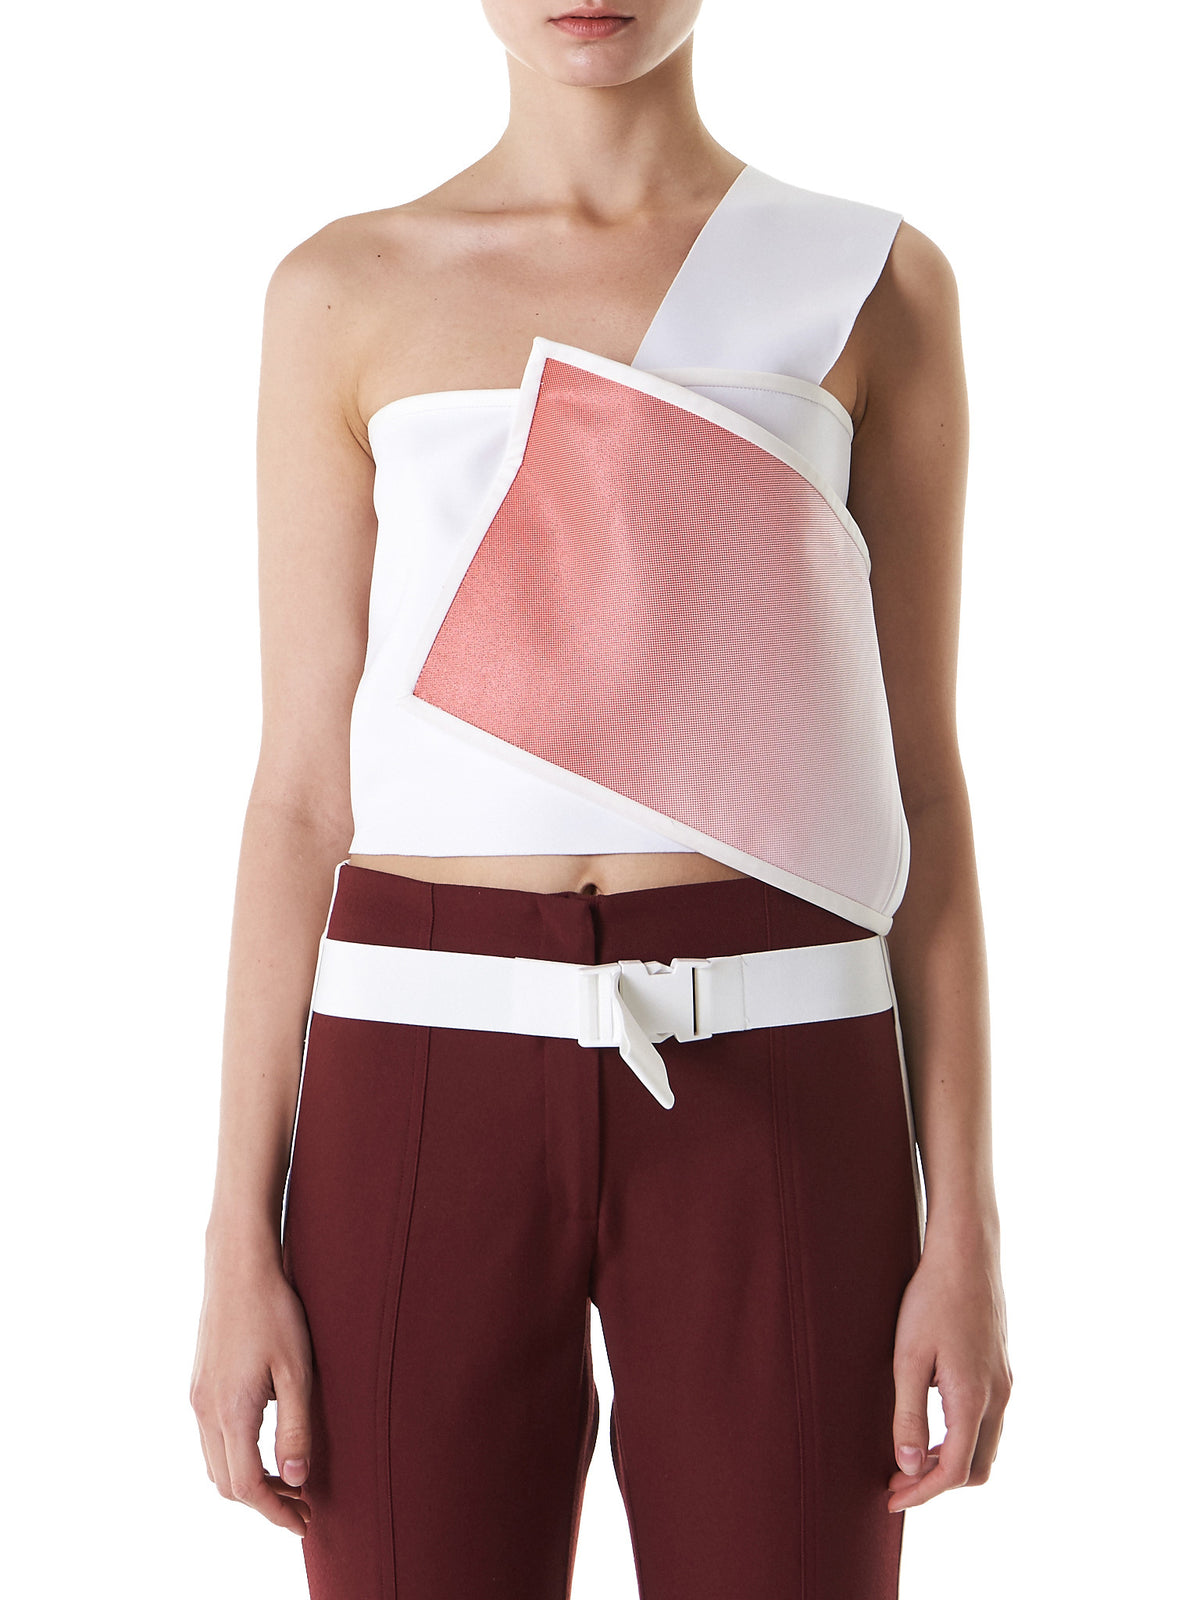 Wrapped Cropped Top (13-1-GRADIENT) - H. Lorenzo